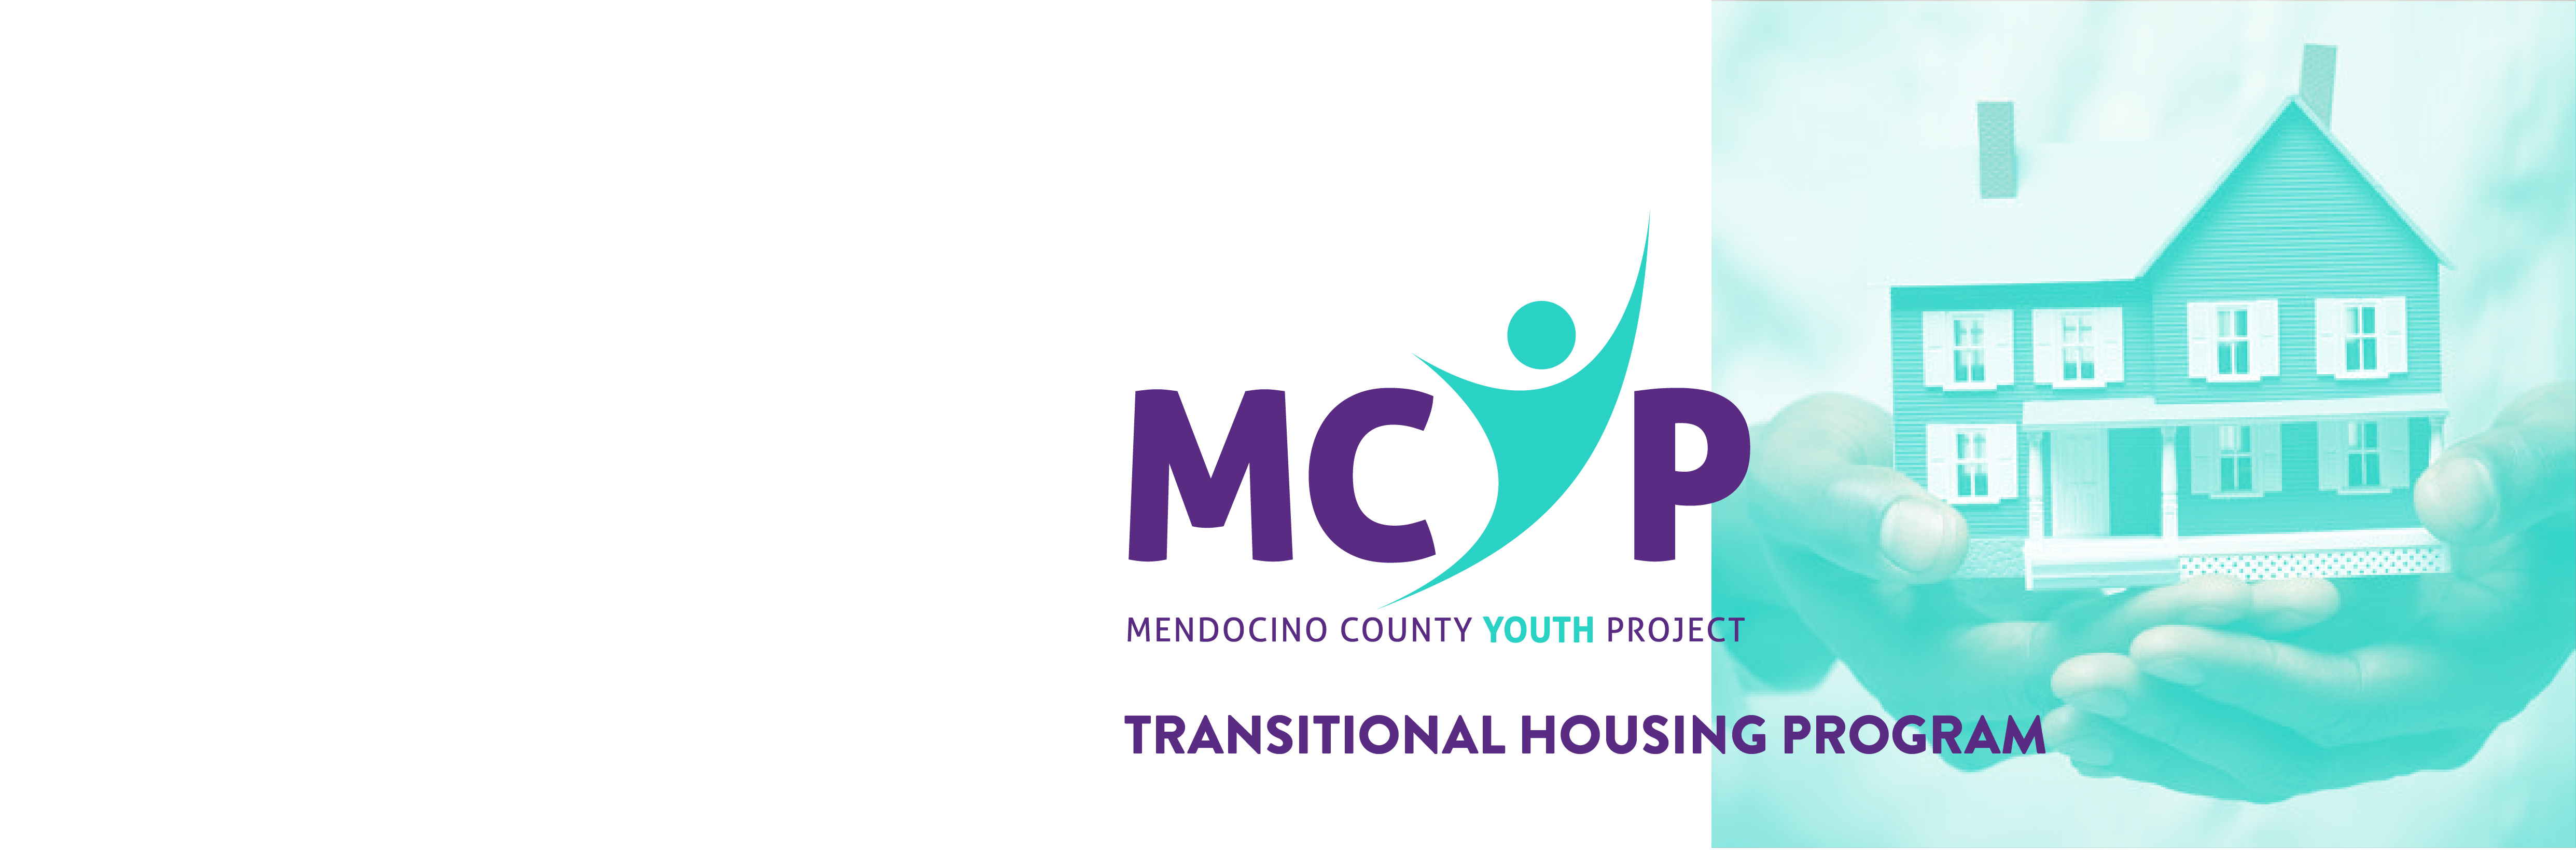 MCYP Homepage Slider Transitional Housing Program-01